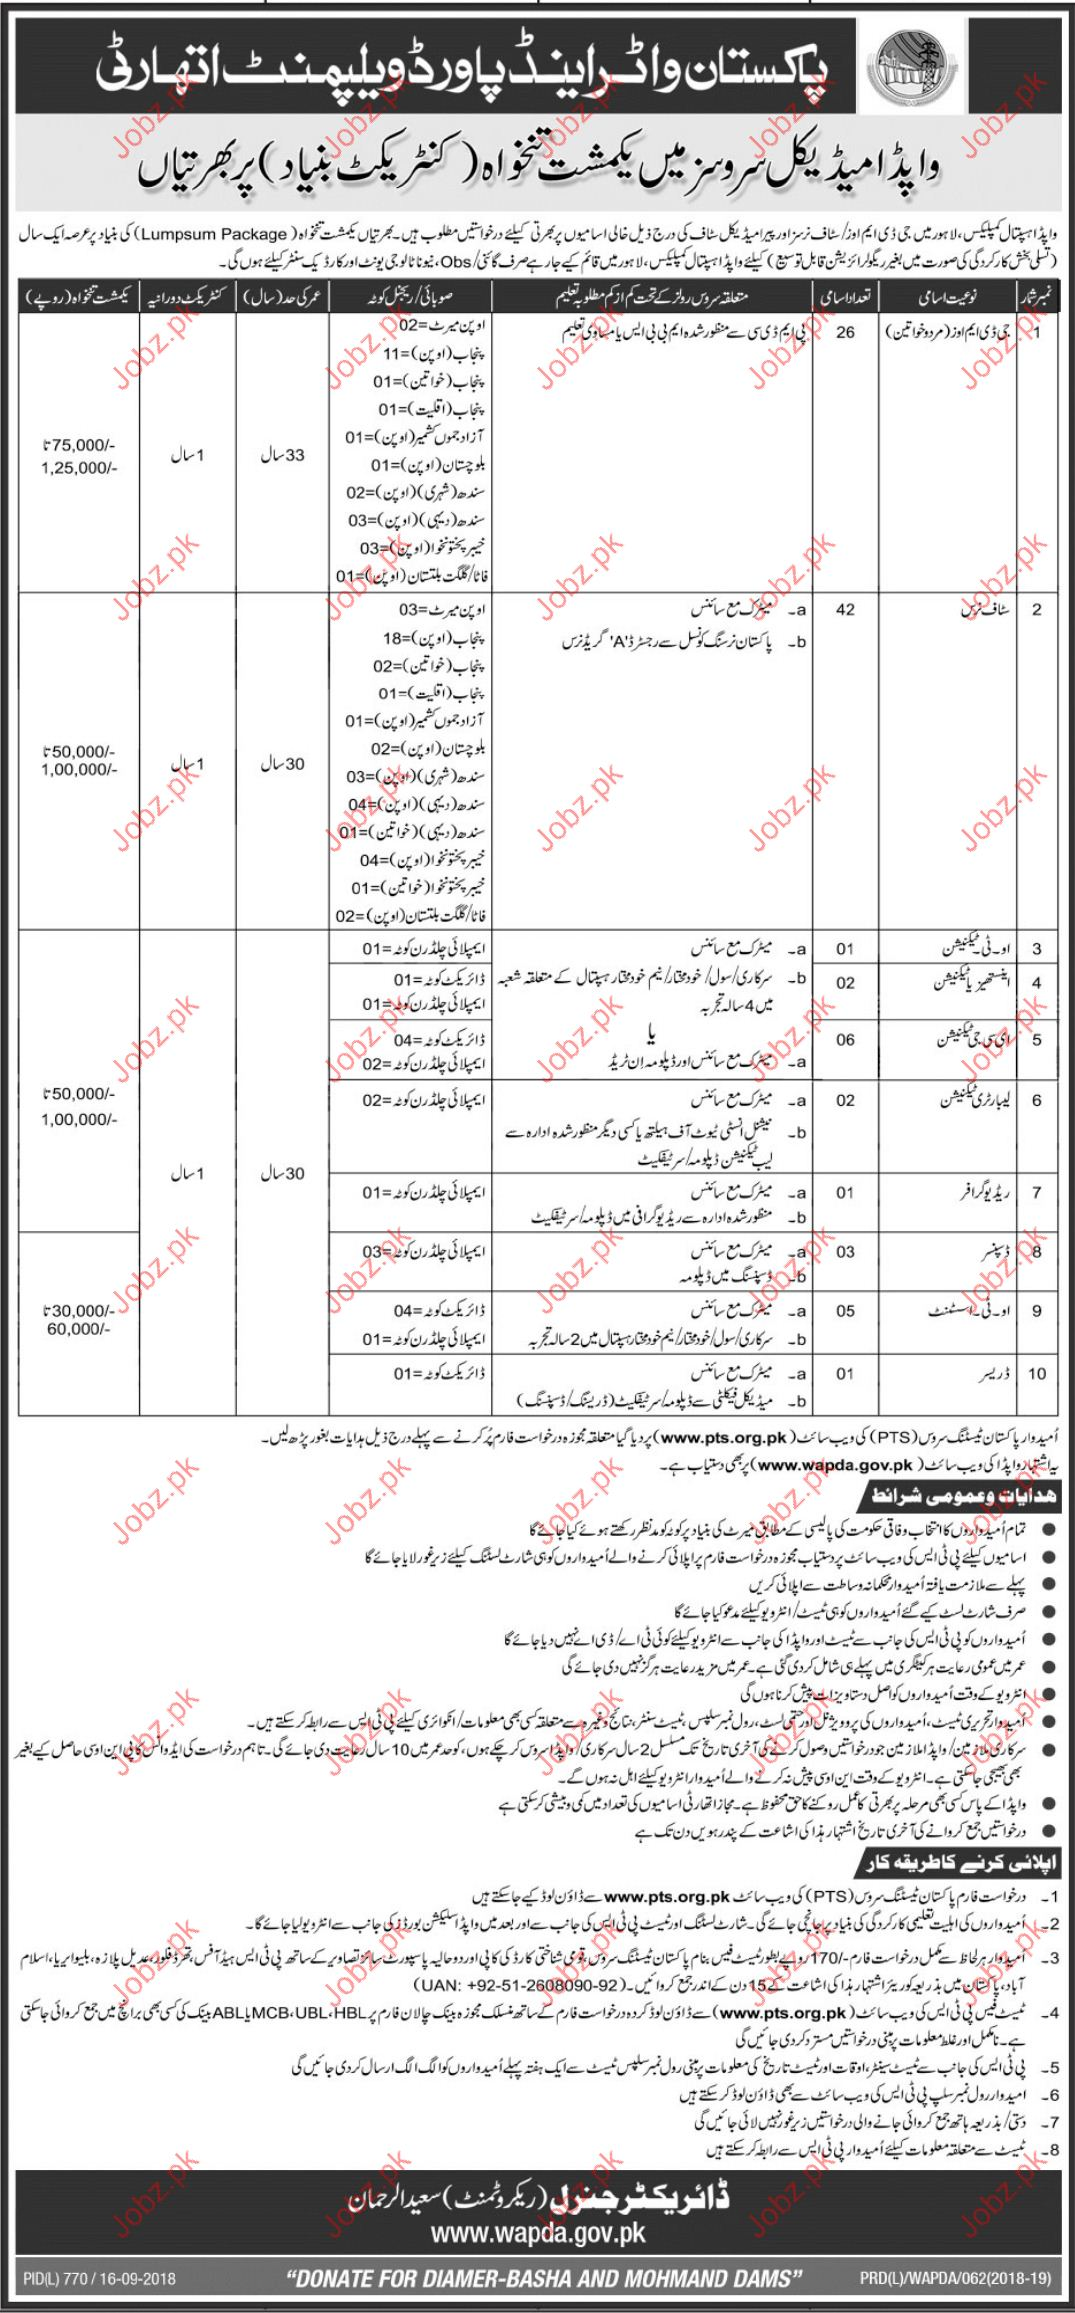 Pakistan Water and Power Development Authority Medical Jobs